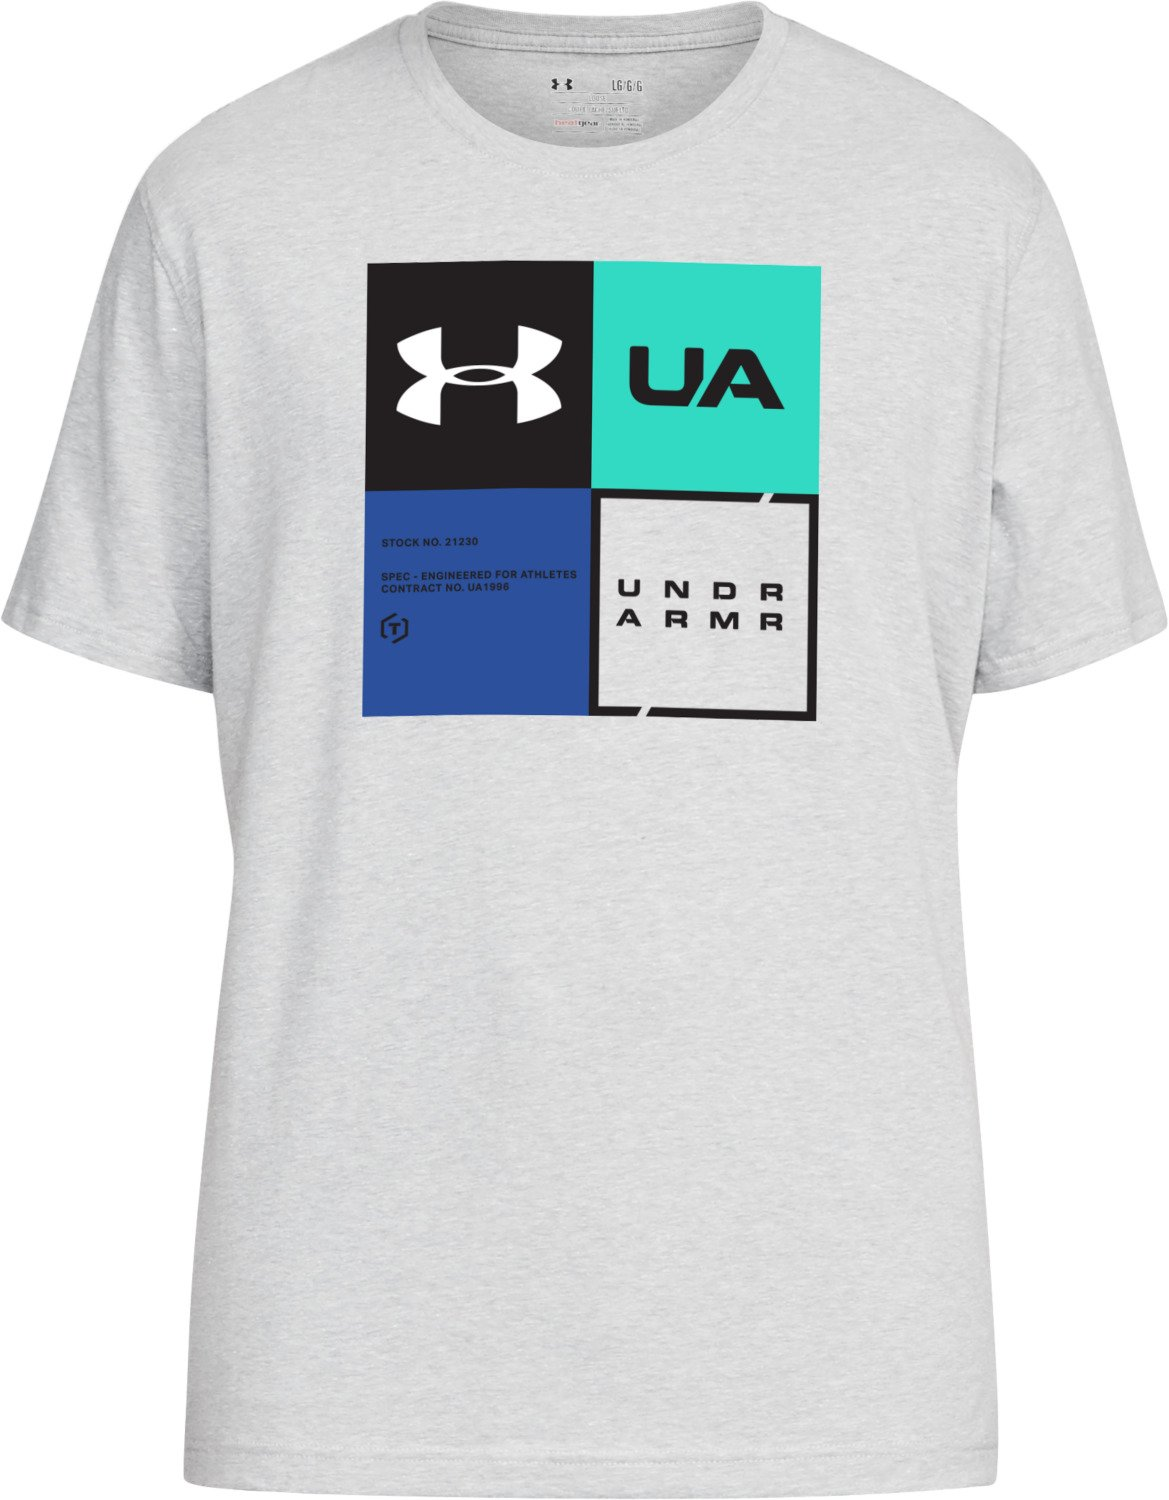 Under Armour Men's Graphic Training T-shirt - view number 2